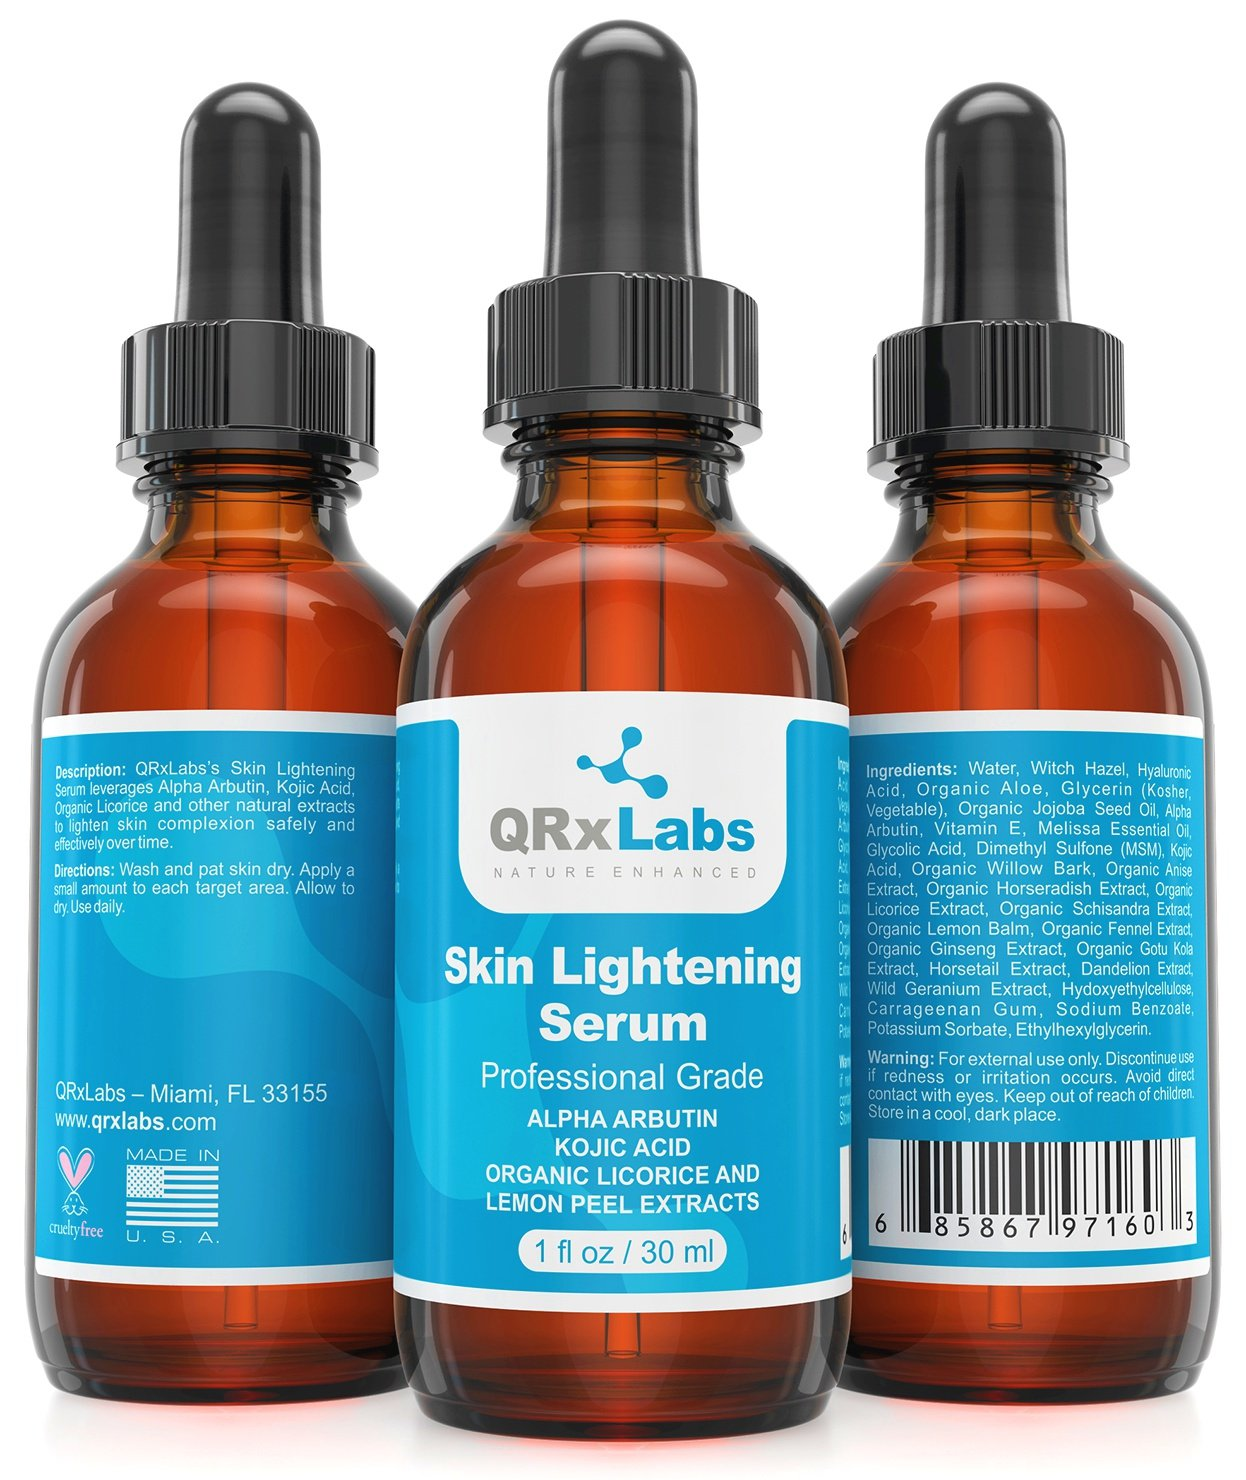 Skin Lightening Serum - Natural & Safe Skin Brightening Serum with Kojic Acid, Alpha Arbutin and Licorice Root Extract - Best Treatment for Dark Spots, Age Spots and Melasma - 1 Bottle of 1 fl oz